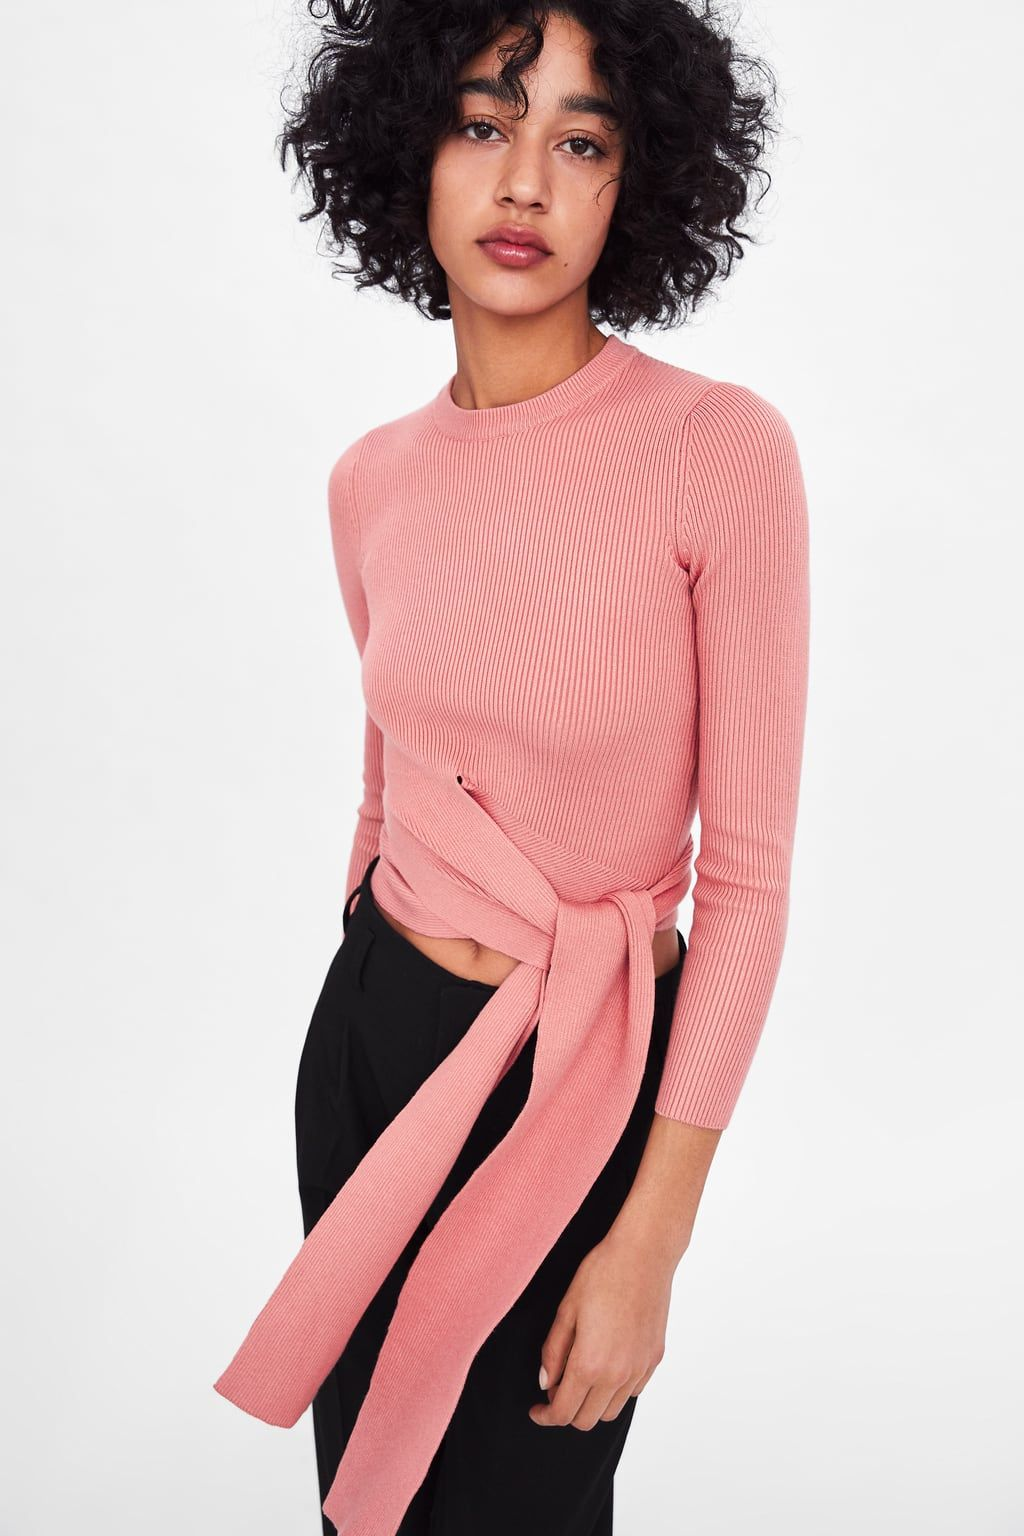 dcae515c8 Sweater with tie at waist in 2019 | The Best of Zara | Oversized ...